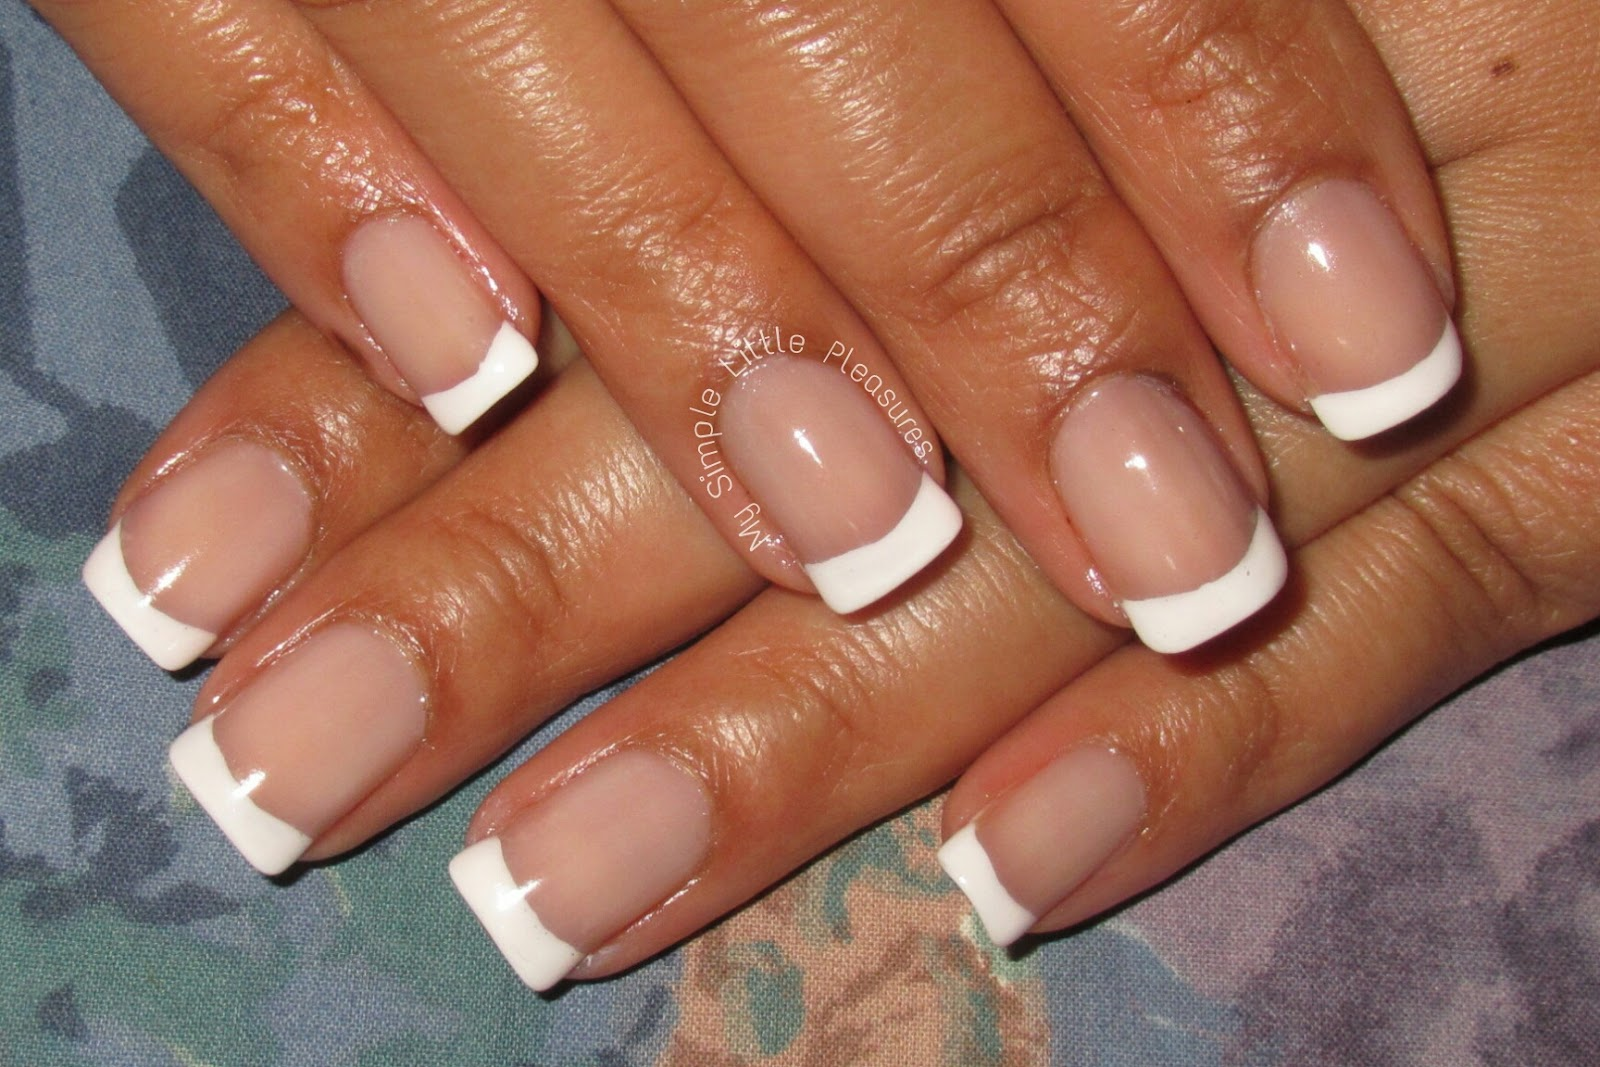 My Simple Little Pleasures: NOTD: Basic French Manicure + Tutorial